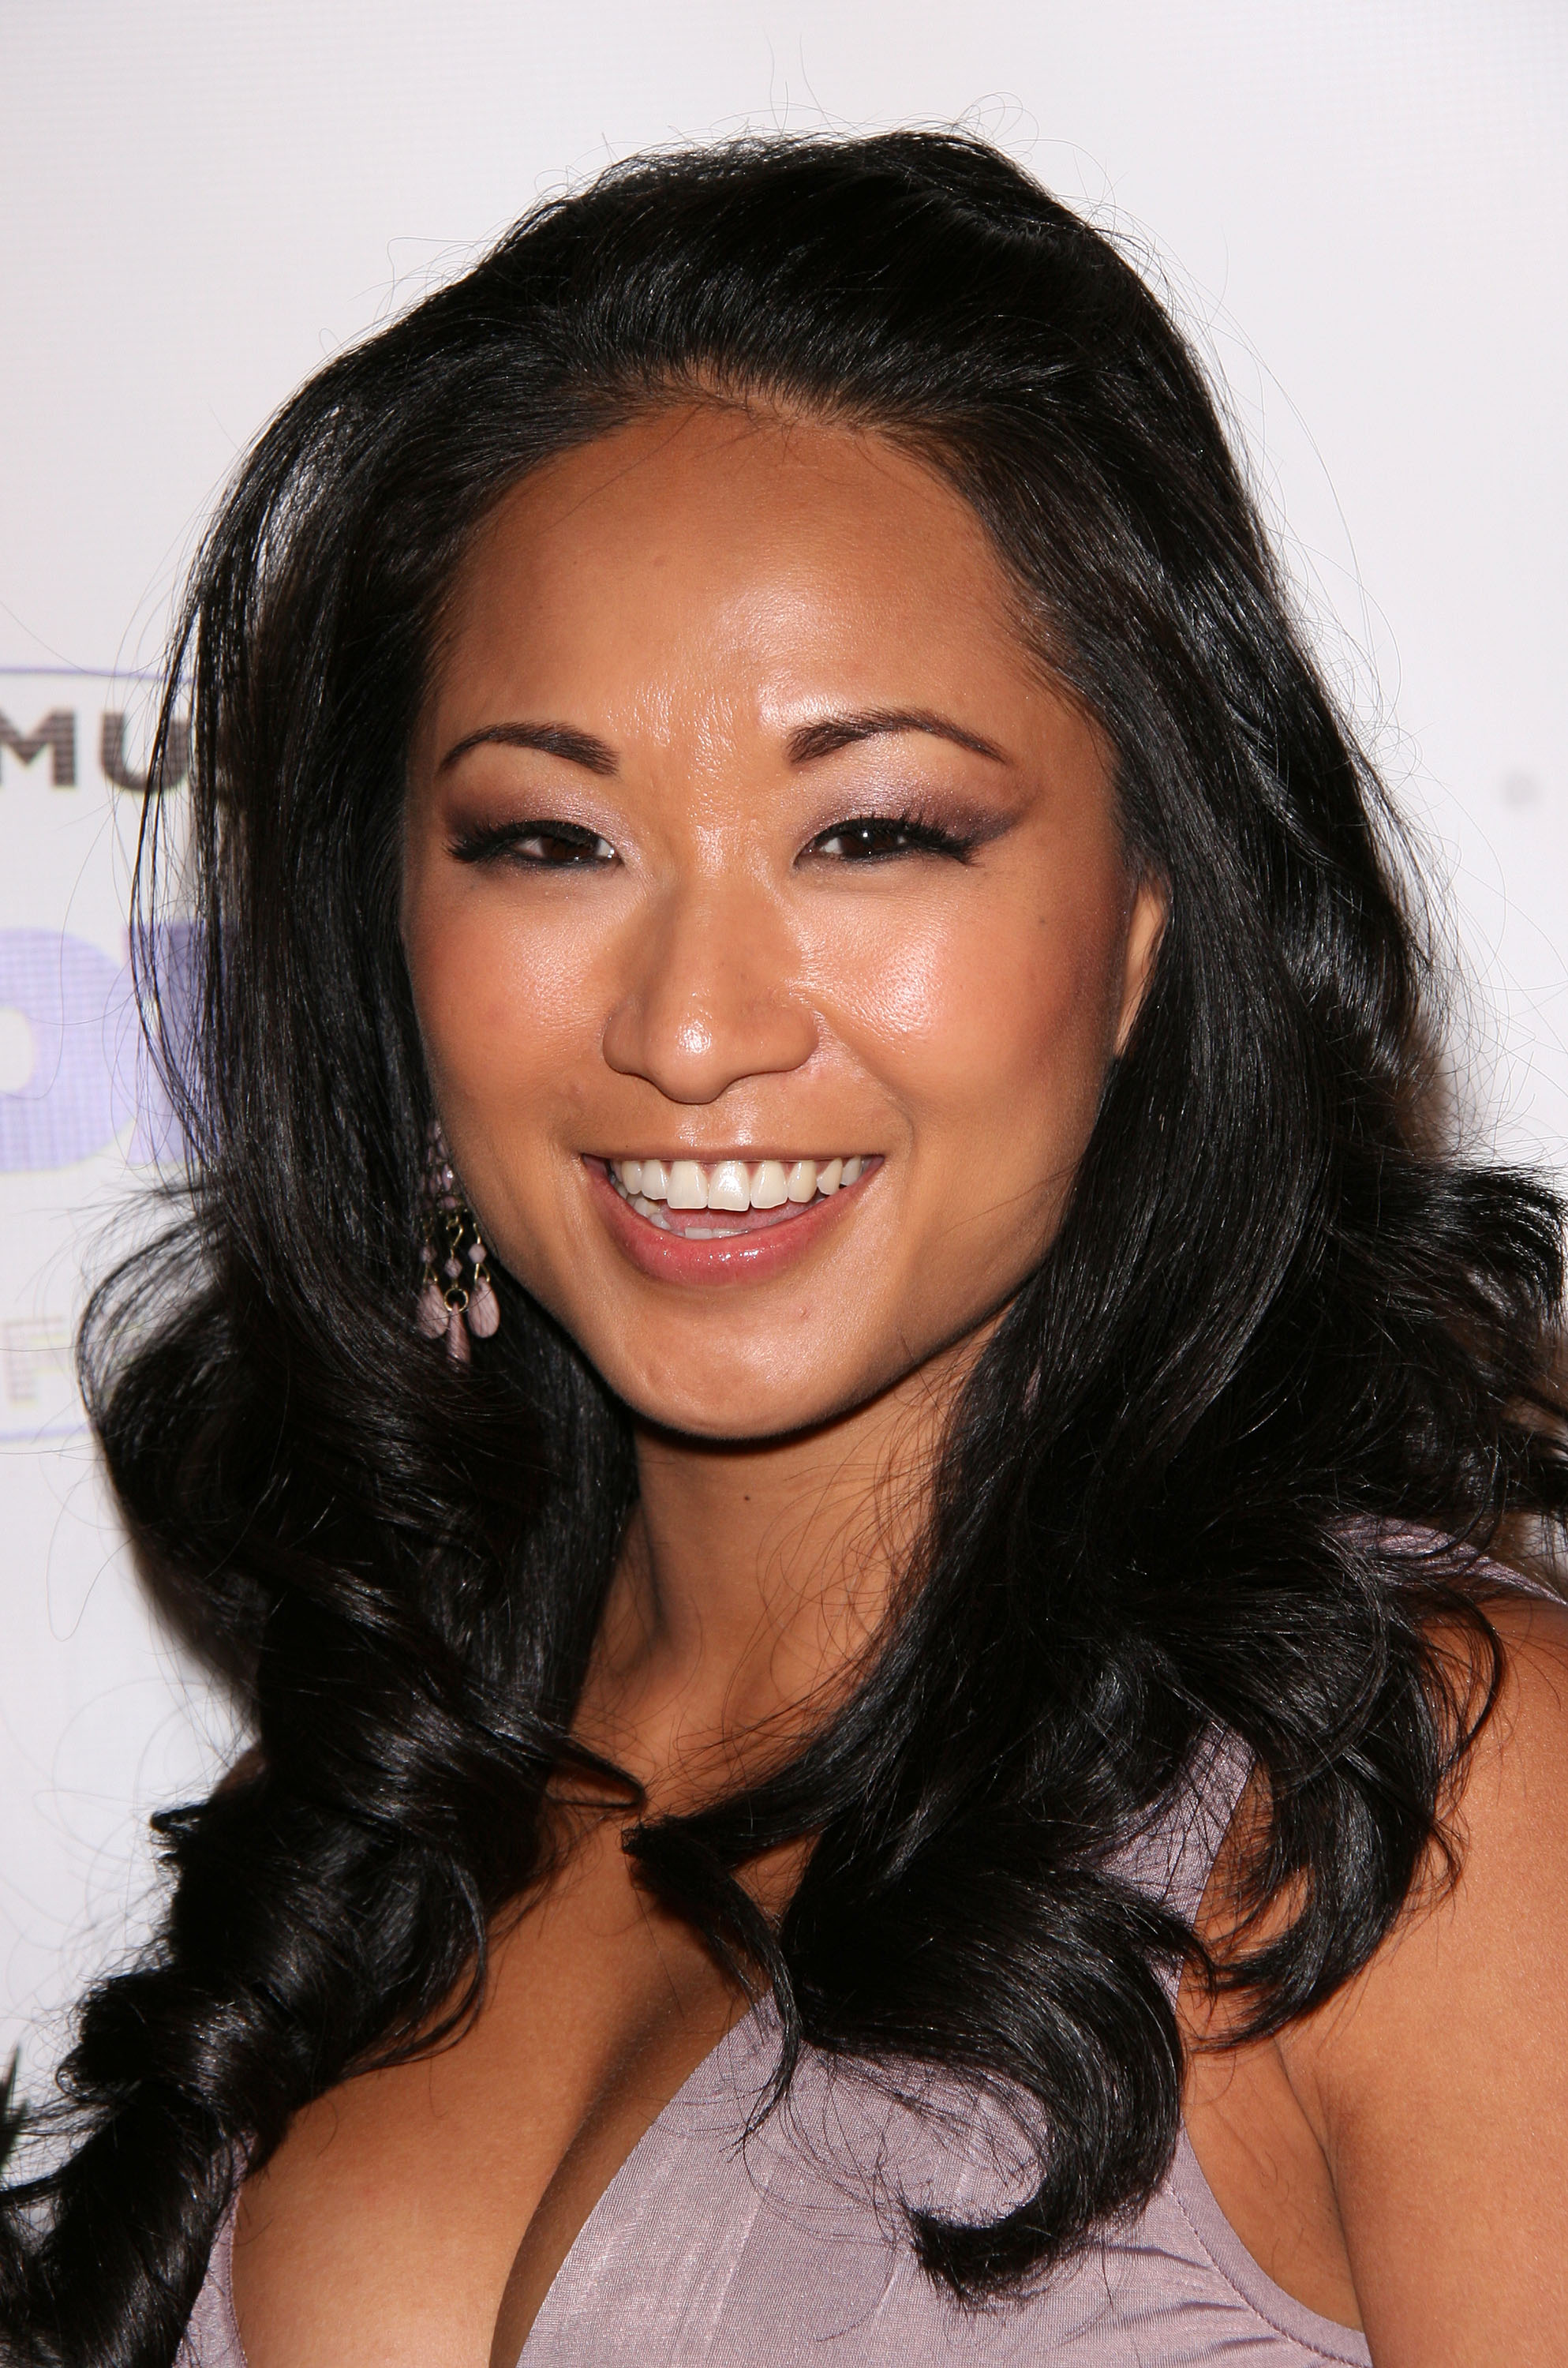 Gail Kim